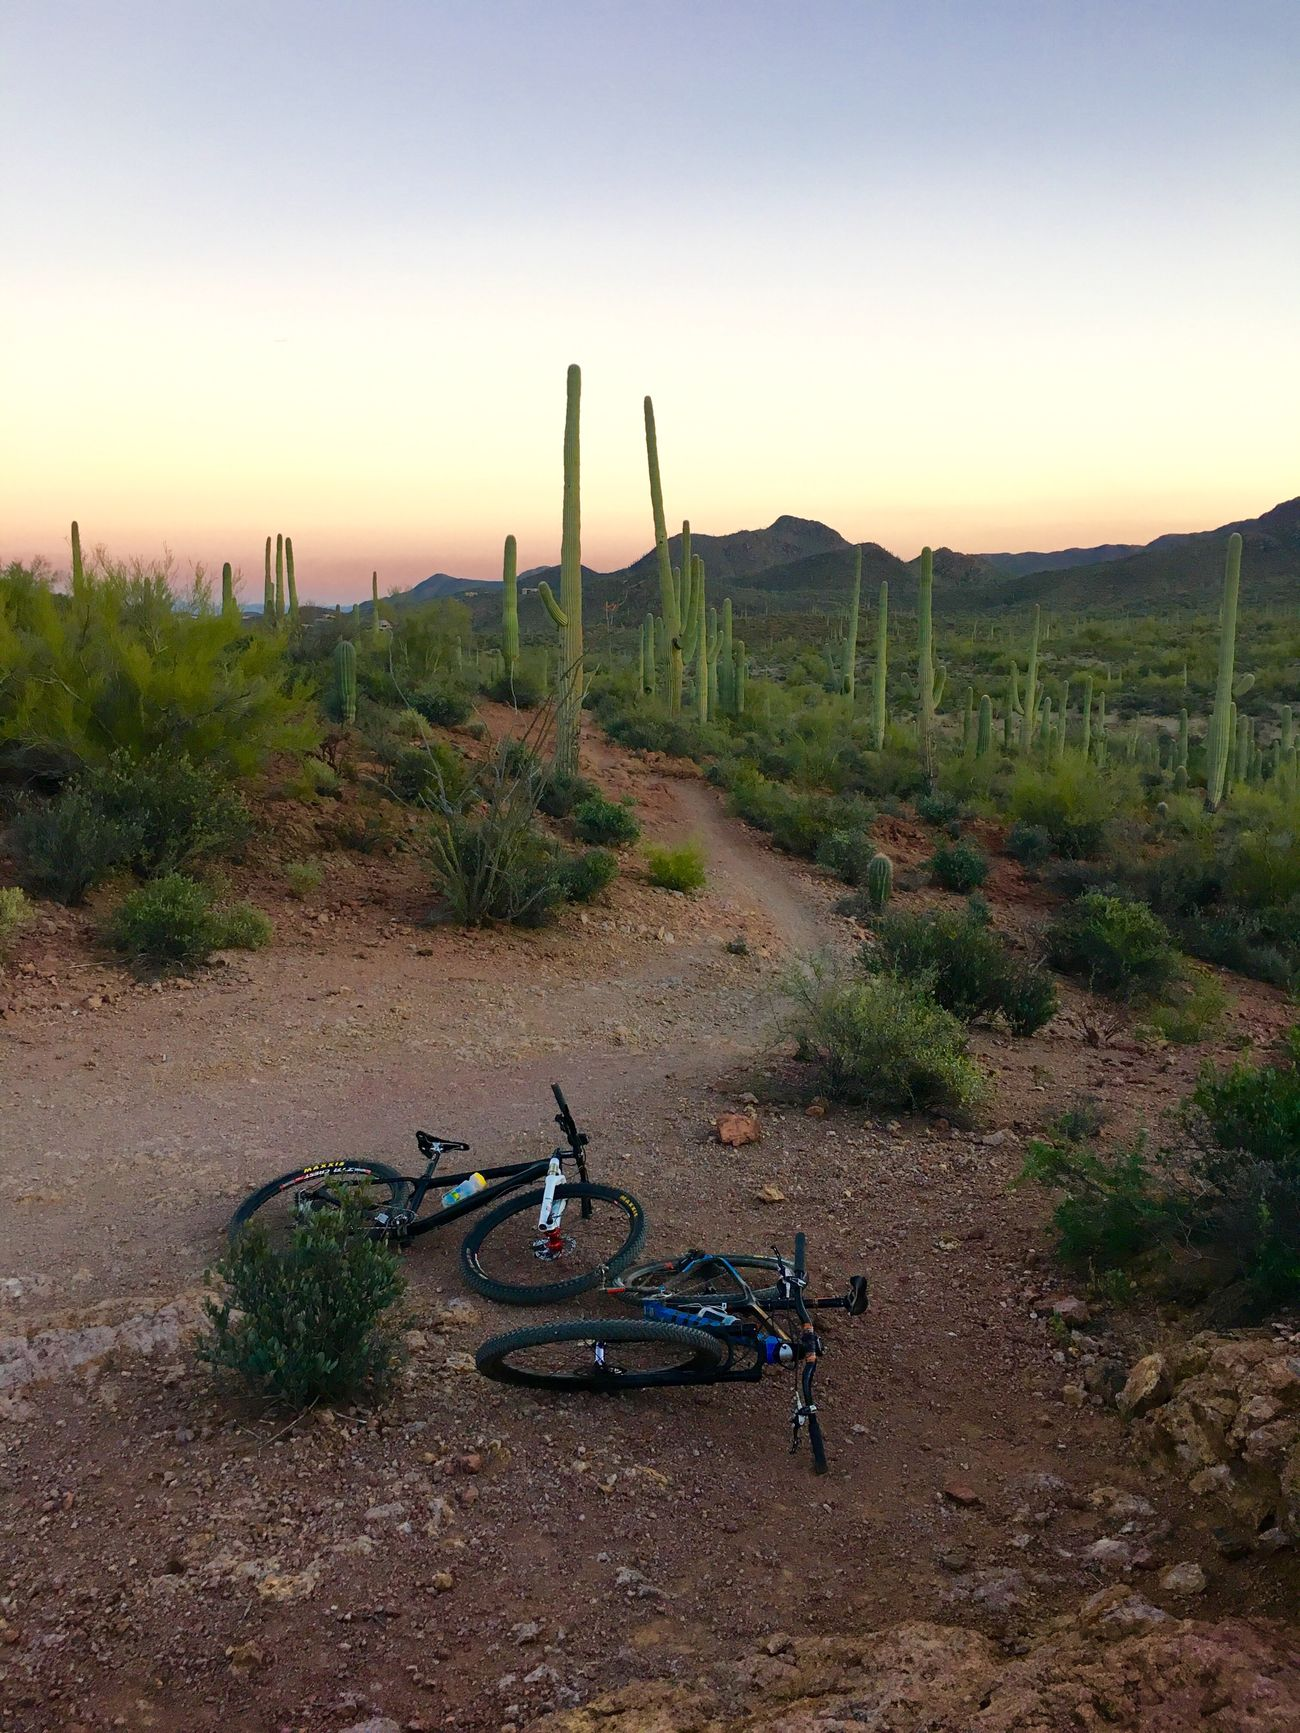 Mountain Biking through the Dessert